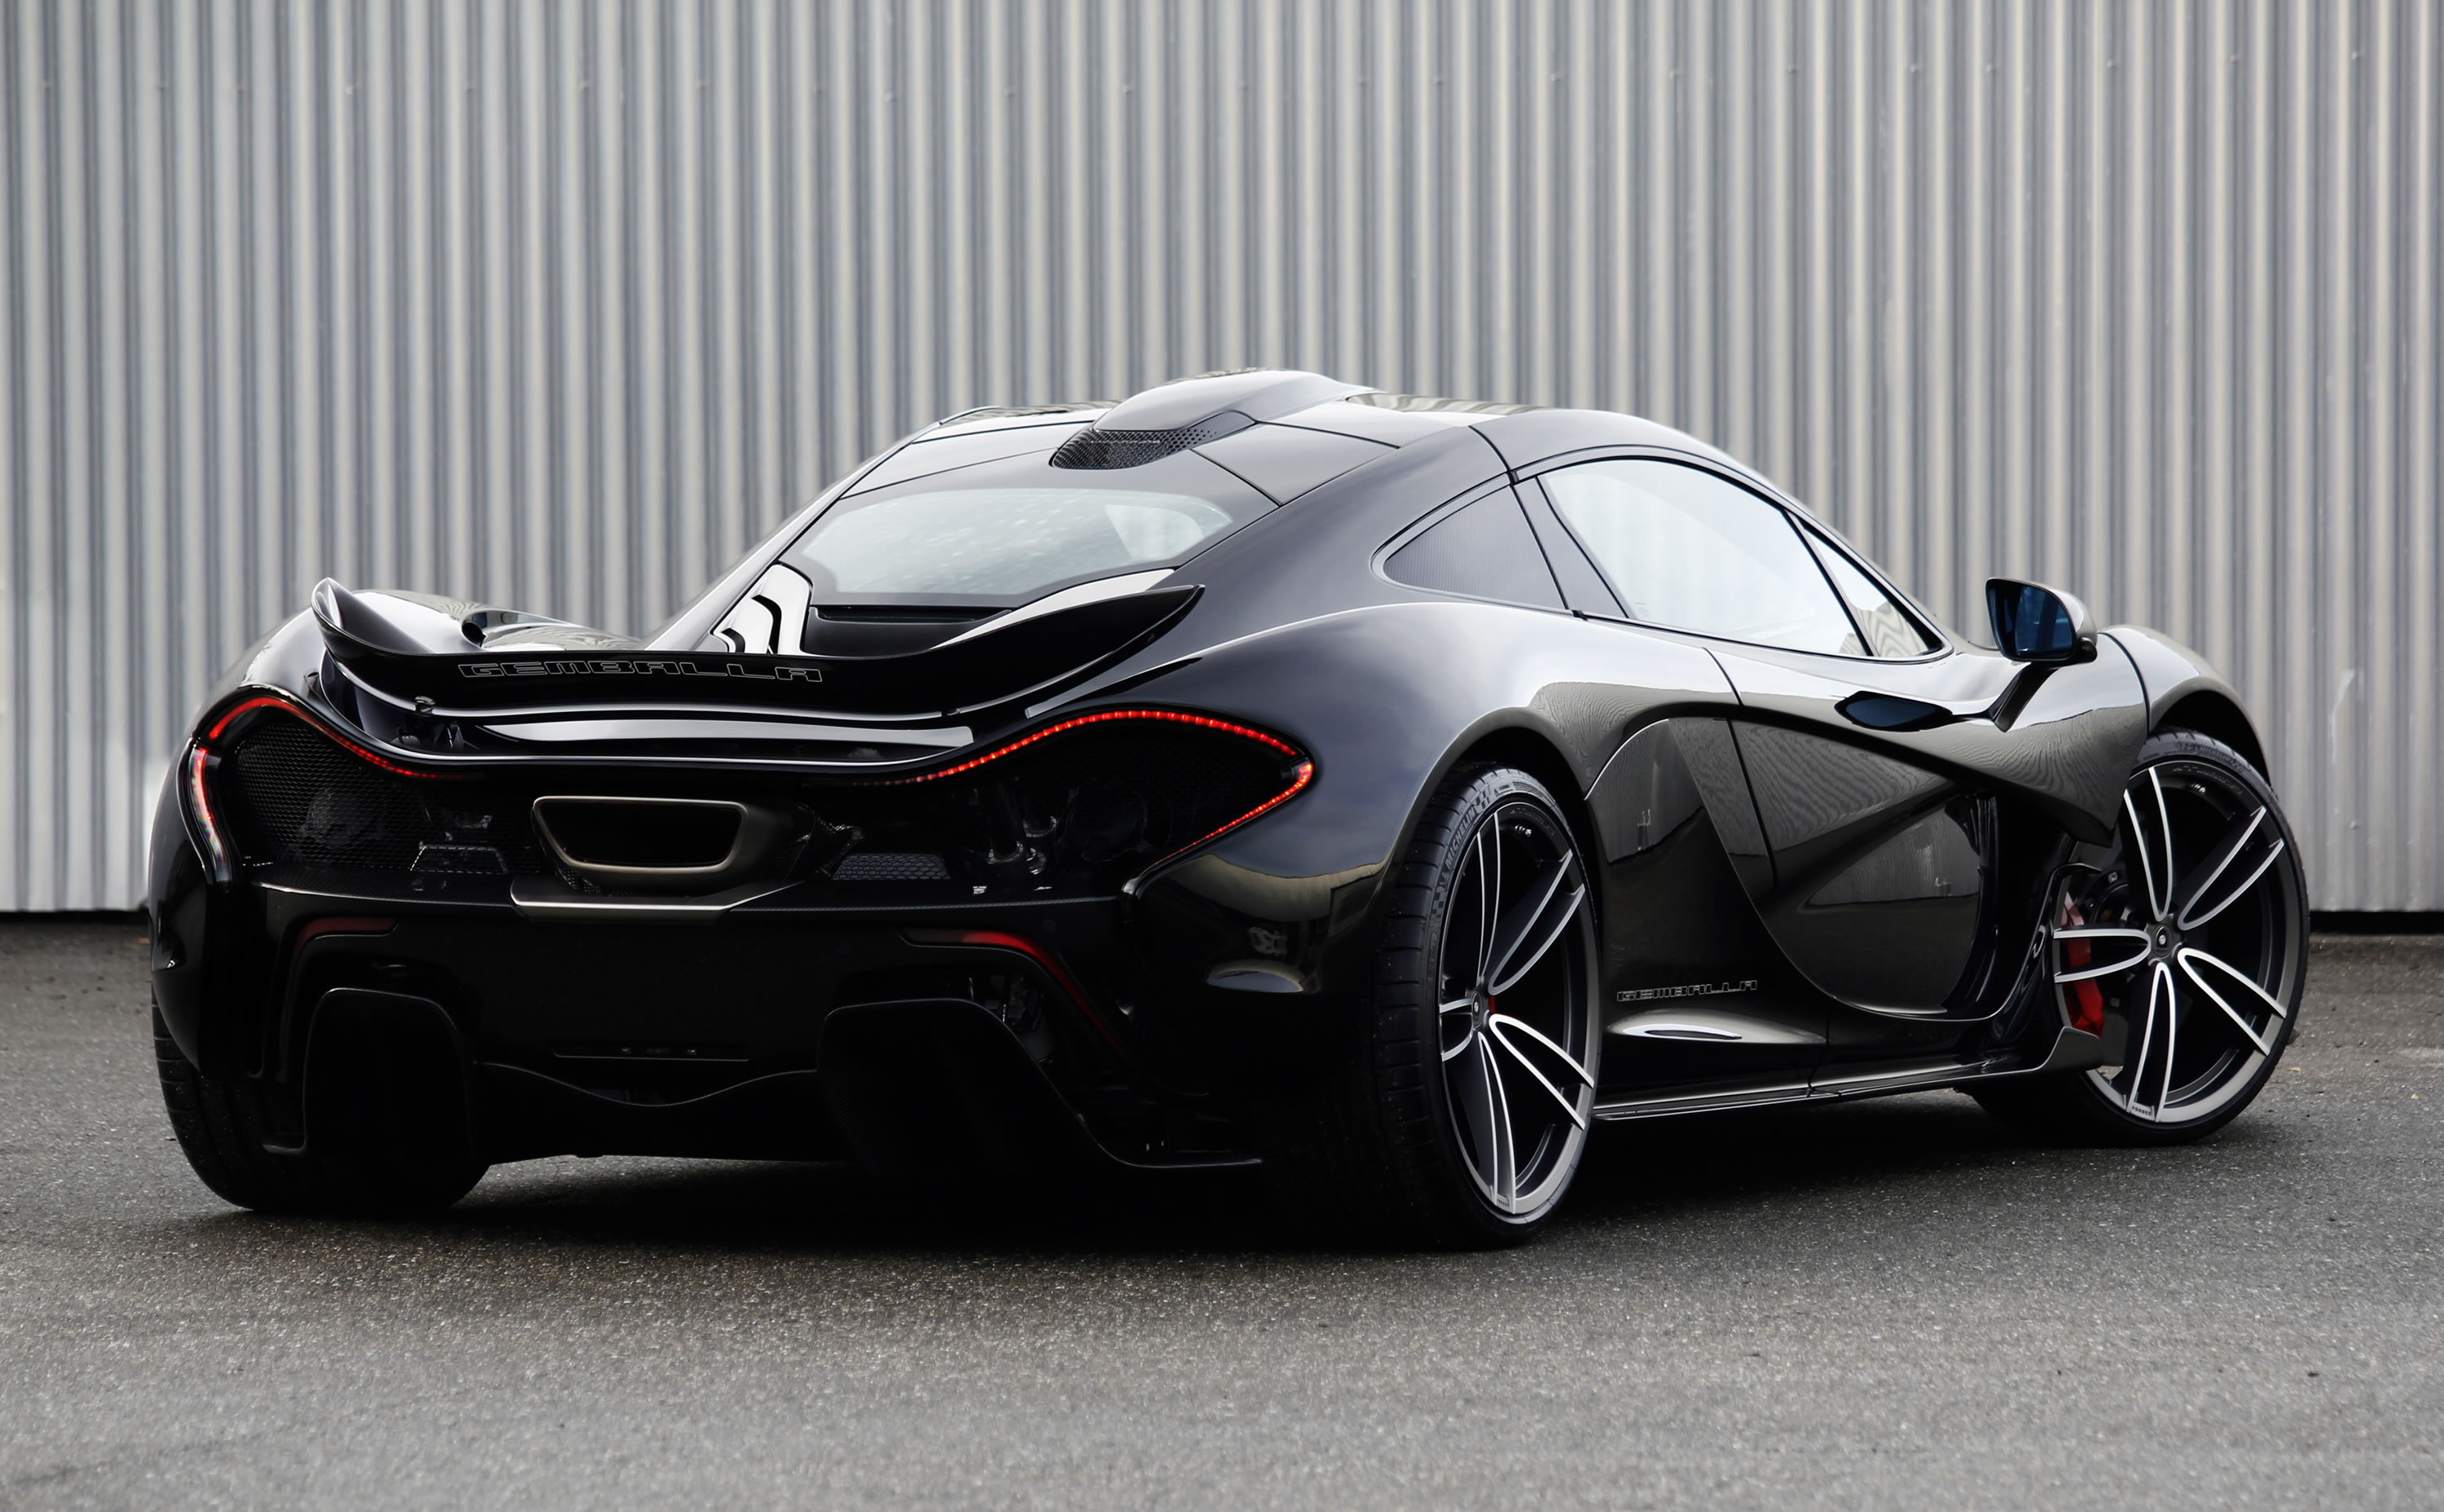 2014 mclaren p1 by gemballa photos specs and review rs. Black Bedroom Furniture Sets. Home Design Ideas